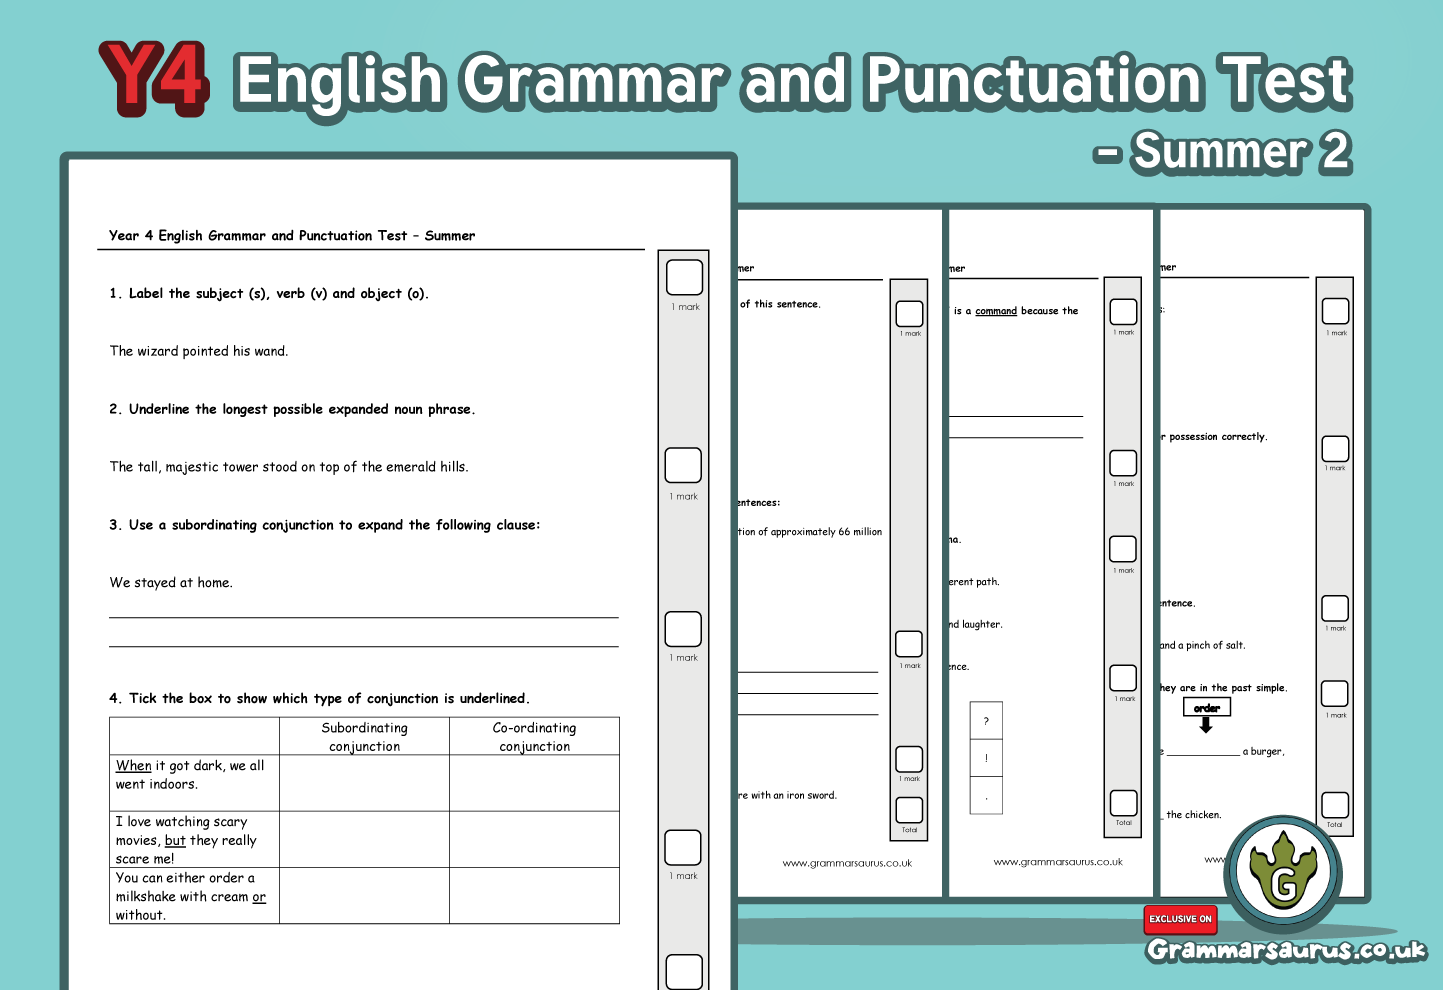 Ks2 Archives Page 16 Of 17 Grammarsaurus Circuit Diagram Year 4 English Spelling Punctuation And Grammar Progress Test Summer 2